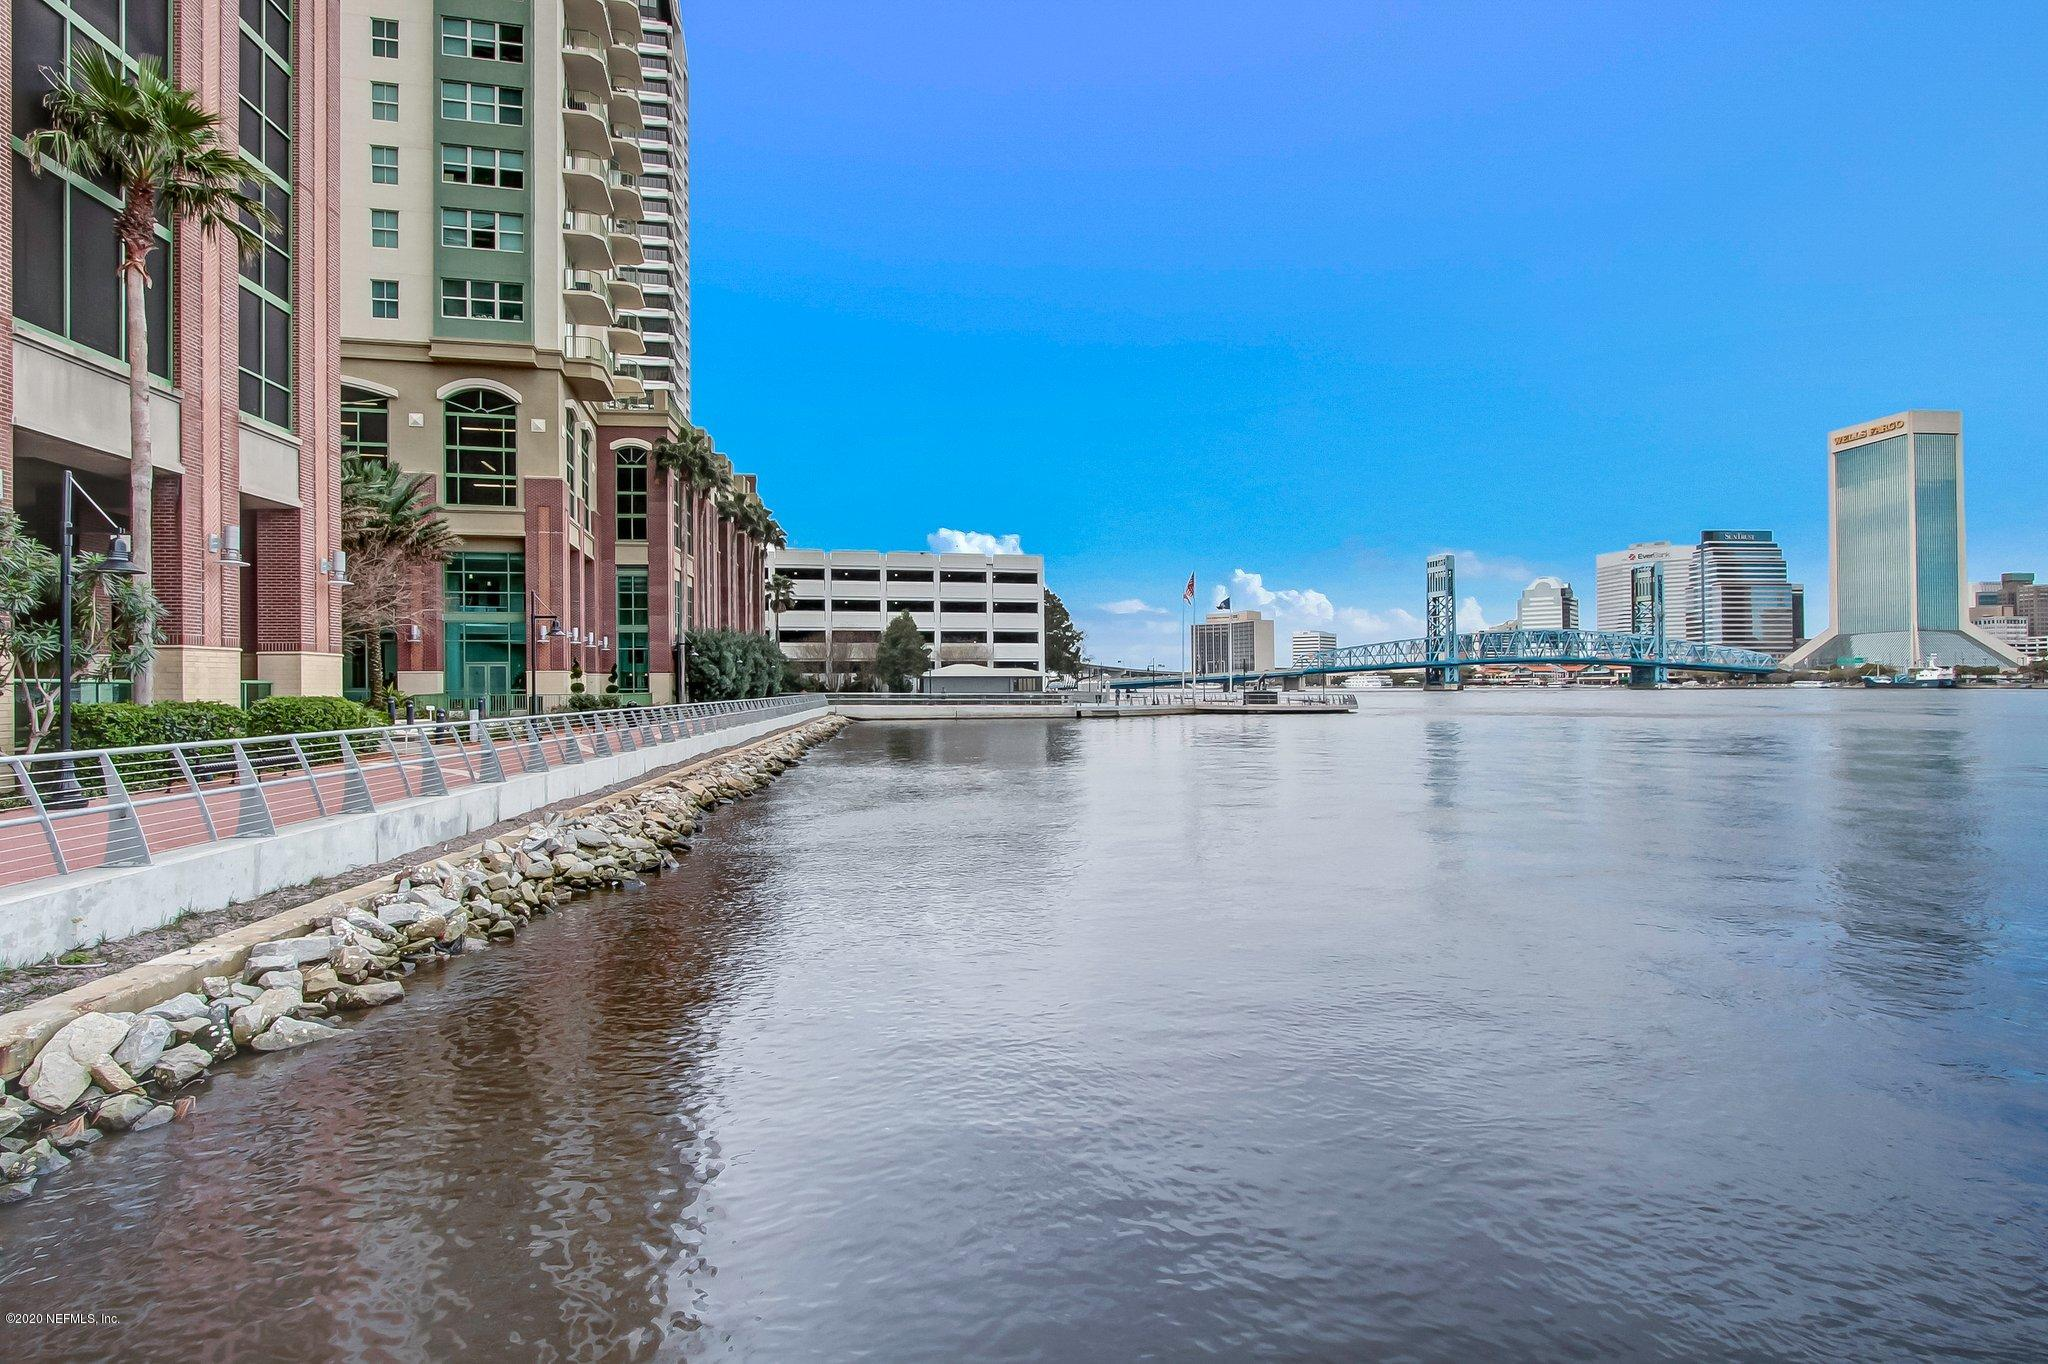 1431 RIVERPLACE, JACKSONVILLE, FLORIDA 32207, 2 Bedrooms Bedrooms, ,2 BathroomsBathrooms,Residential,For sale,RIVERPLACE,1045952